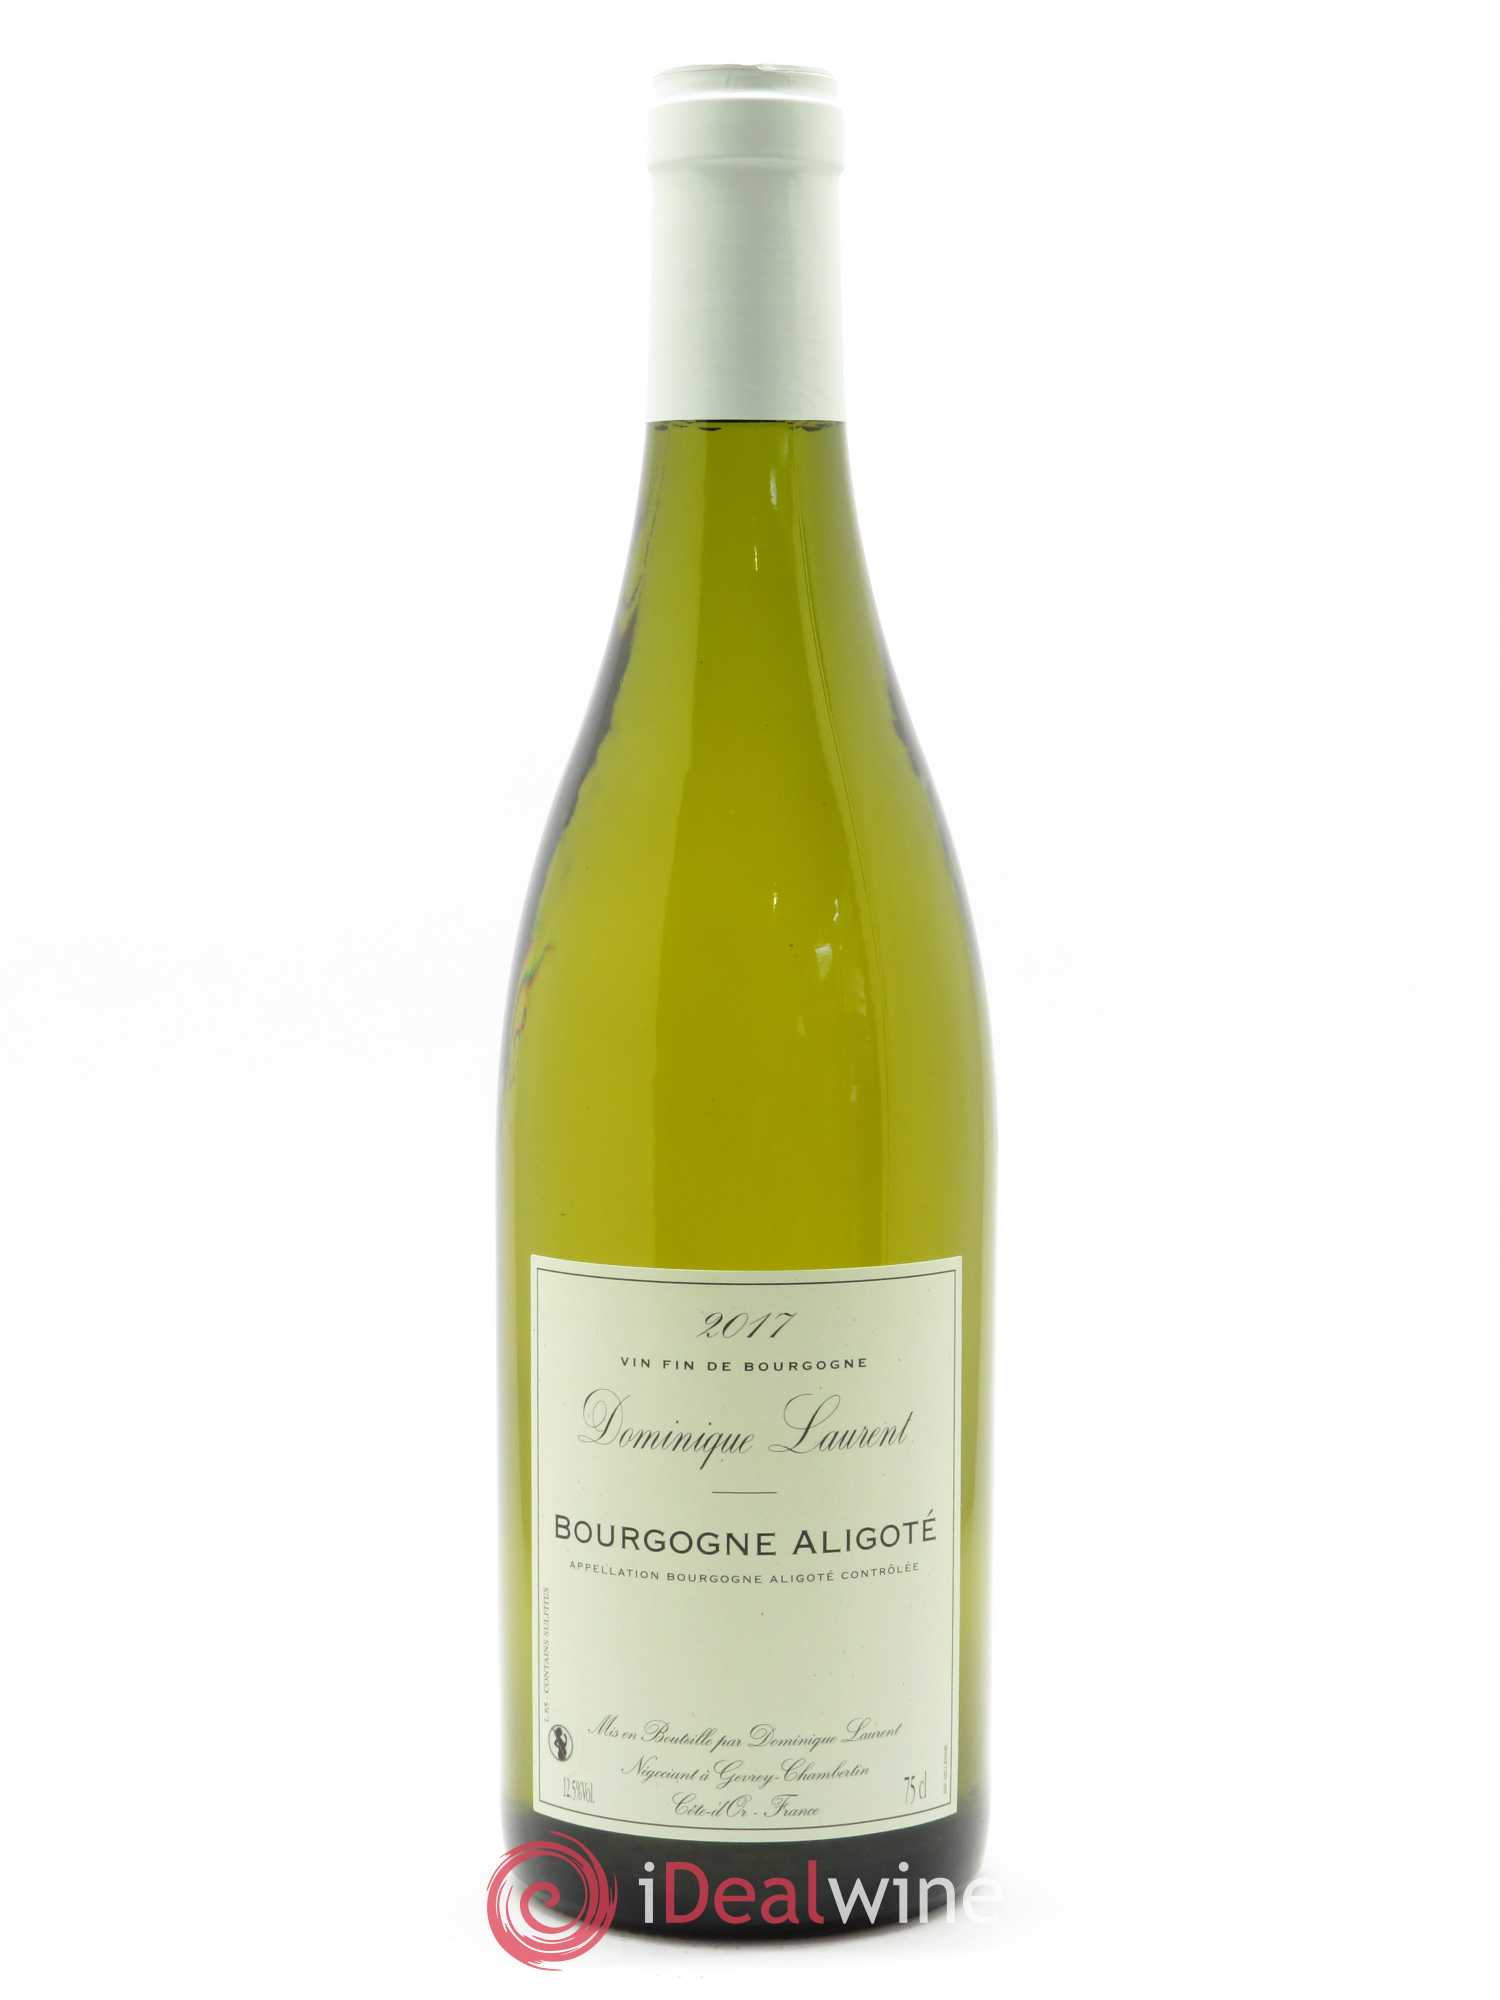 Bourgogne Aligoté Dominique Laurent  2017 - Lot de 1 Bouteille